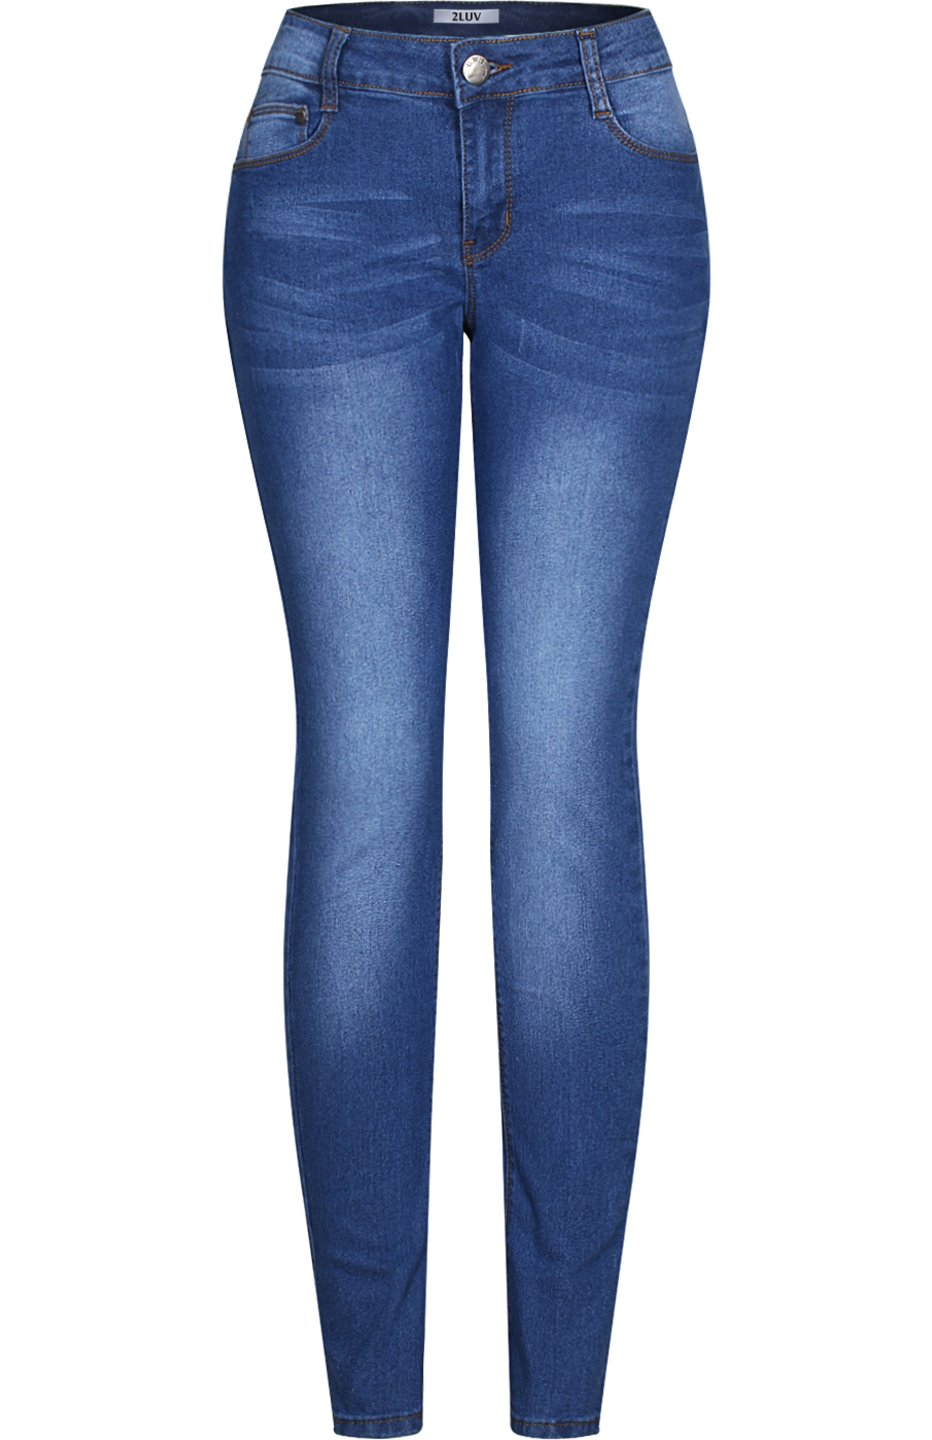 8b1da3d00885 Galleon - 2LUV Women s Stretchy 5 Pocket Solid Skinny Jeans Medium Blue  Wash 3